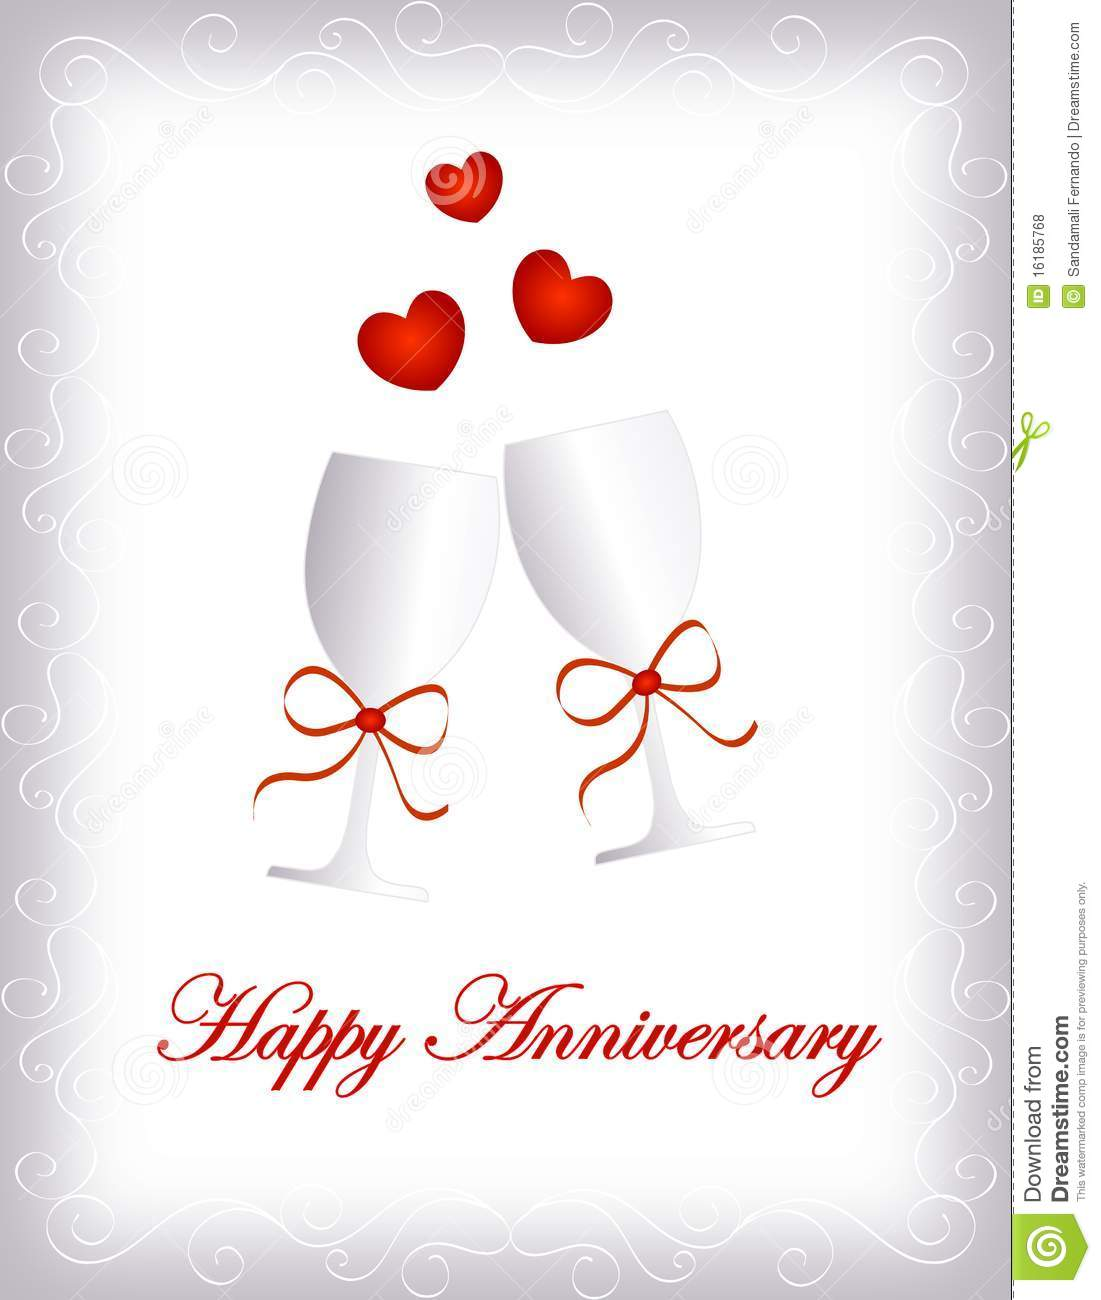 happy anniversary stock illustration illustration of champagne